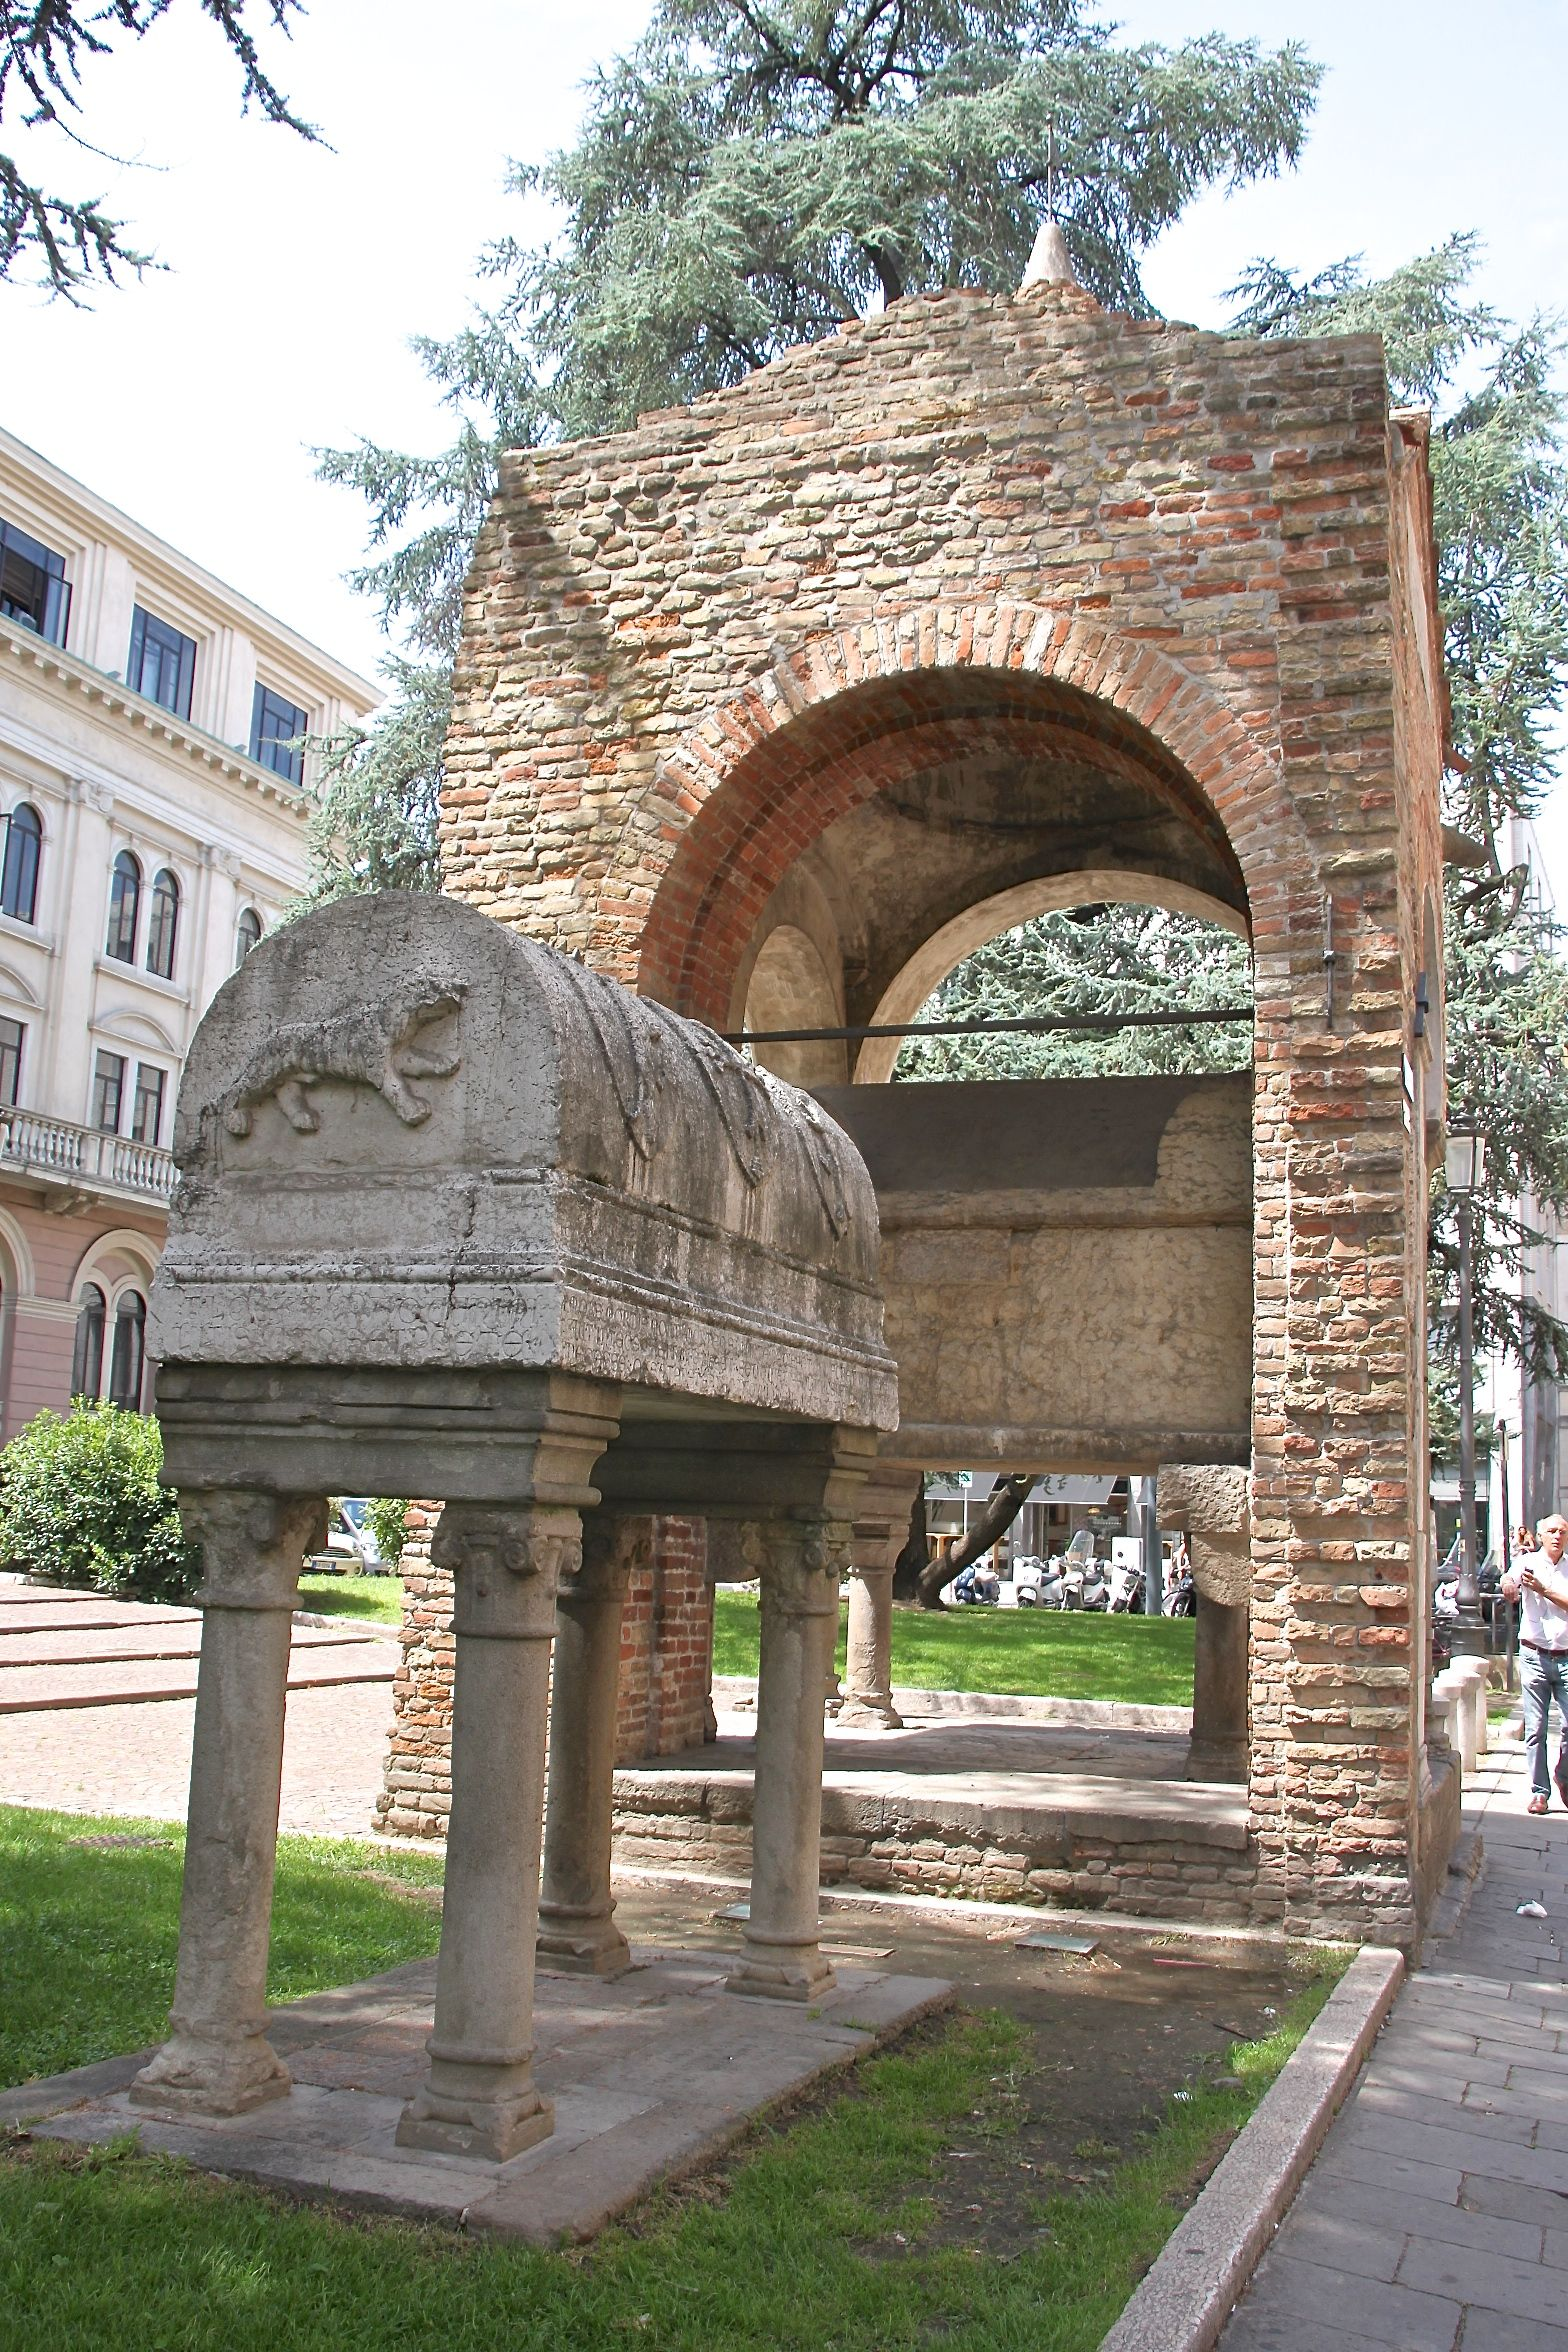 Trojan Prince Antenor's stone sarcophagus and final resting place in Padua